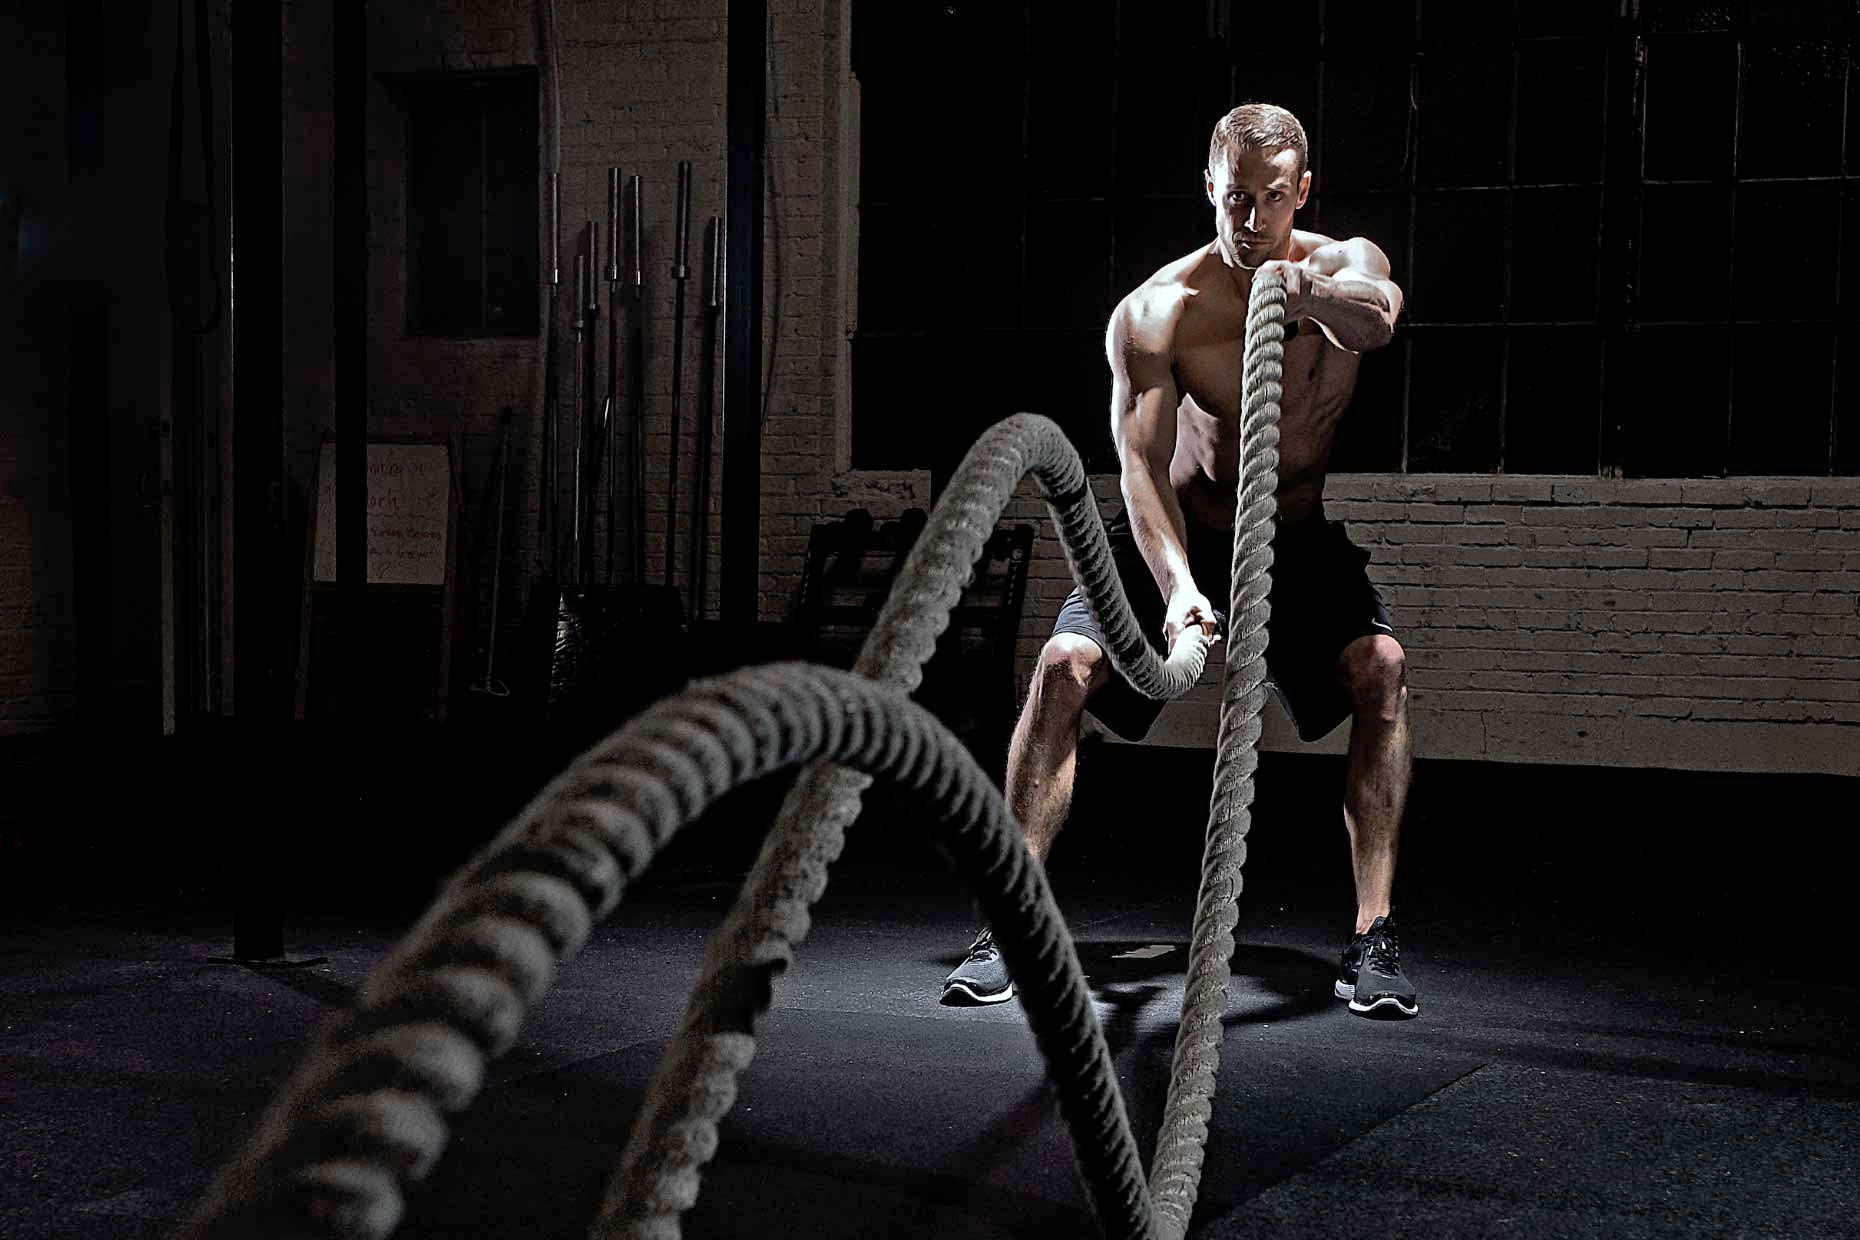 10 Best CrossFit Equipment For Home Use